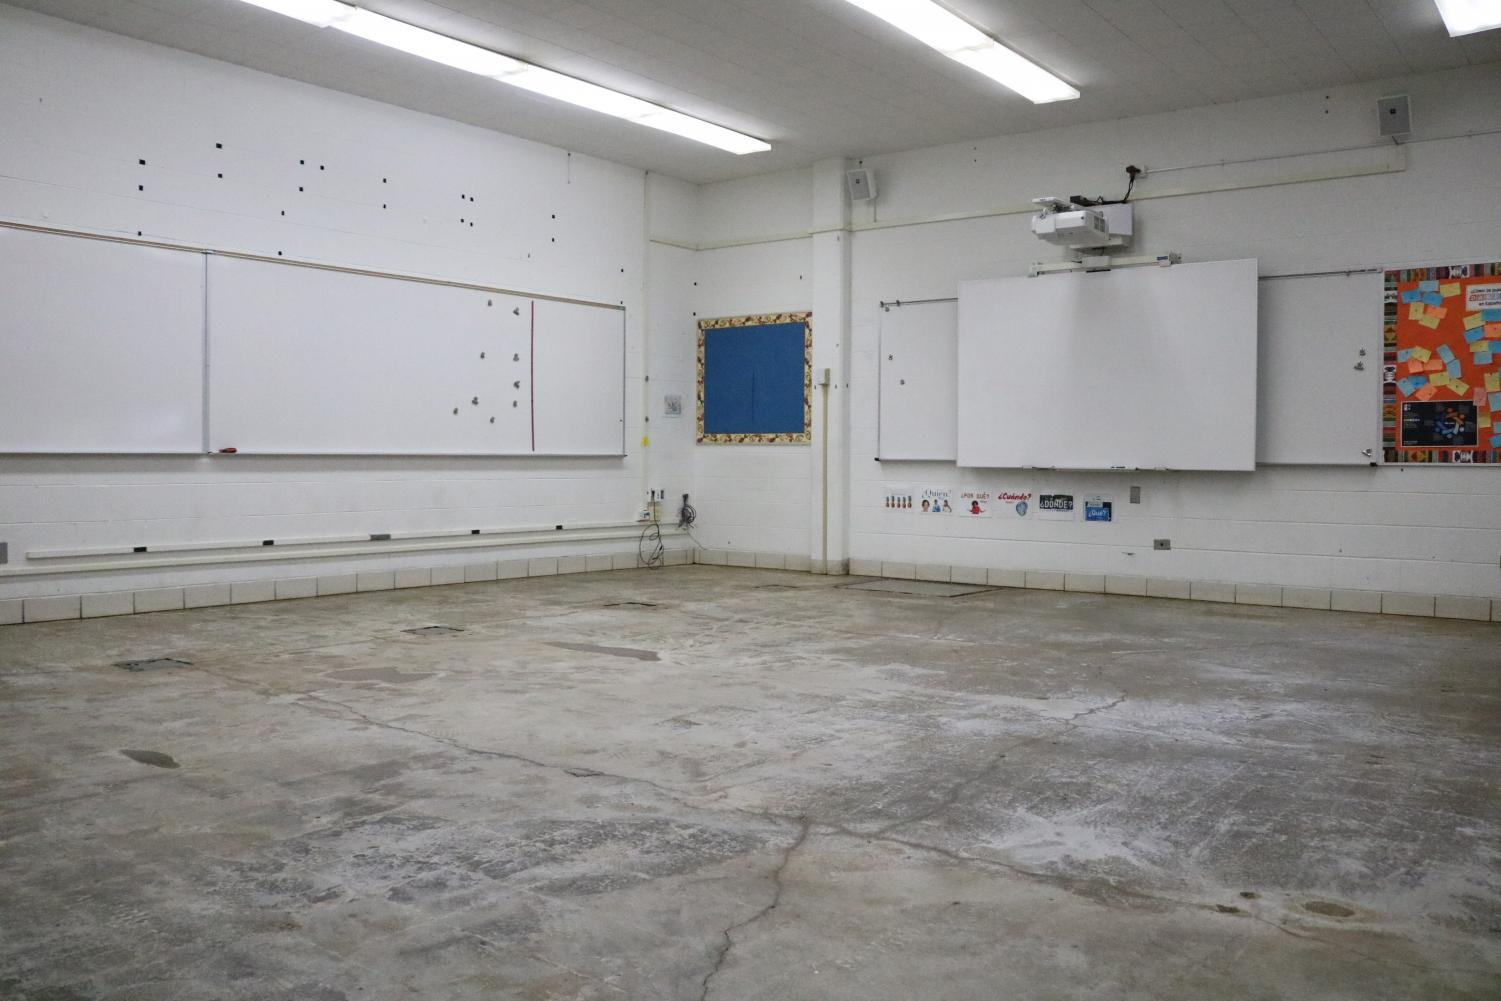 Room 130 is one of the foreign language classrooms where asbestos was found under the floor tiles. The asbestos was discovered in early April; the classrooms are expected to ready to use on May 20.